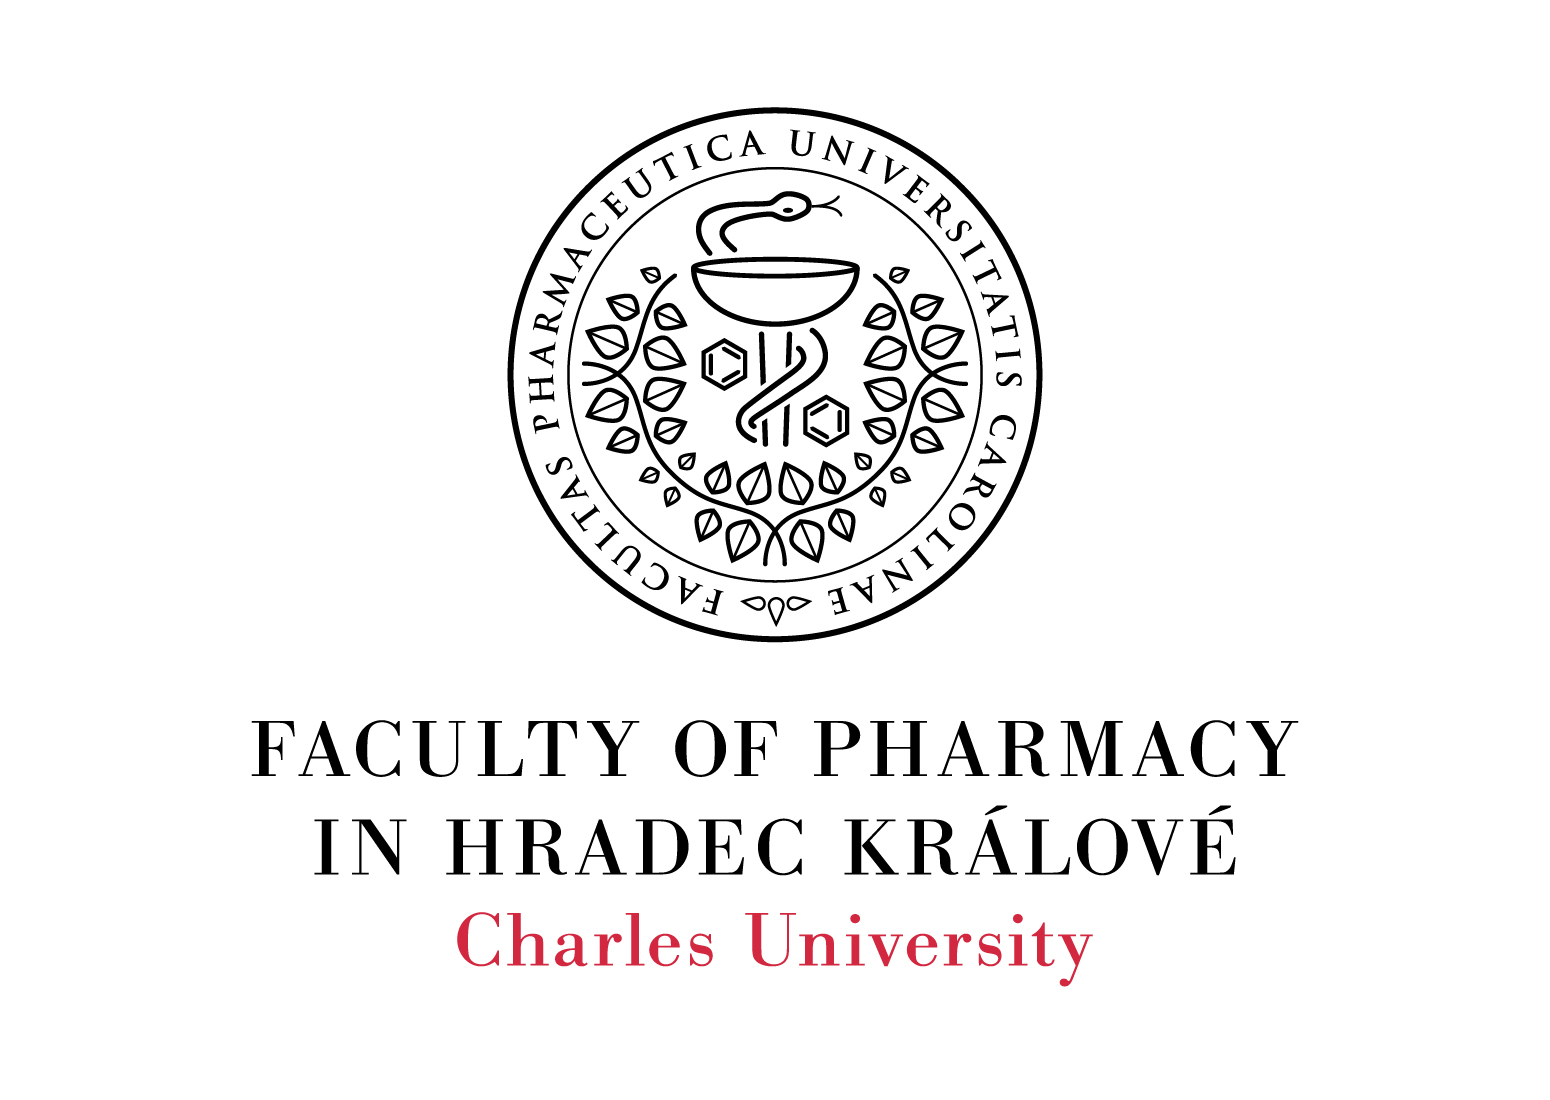 Logotype of the Faculty of Pharmacy, Charles University